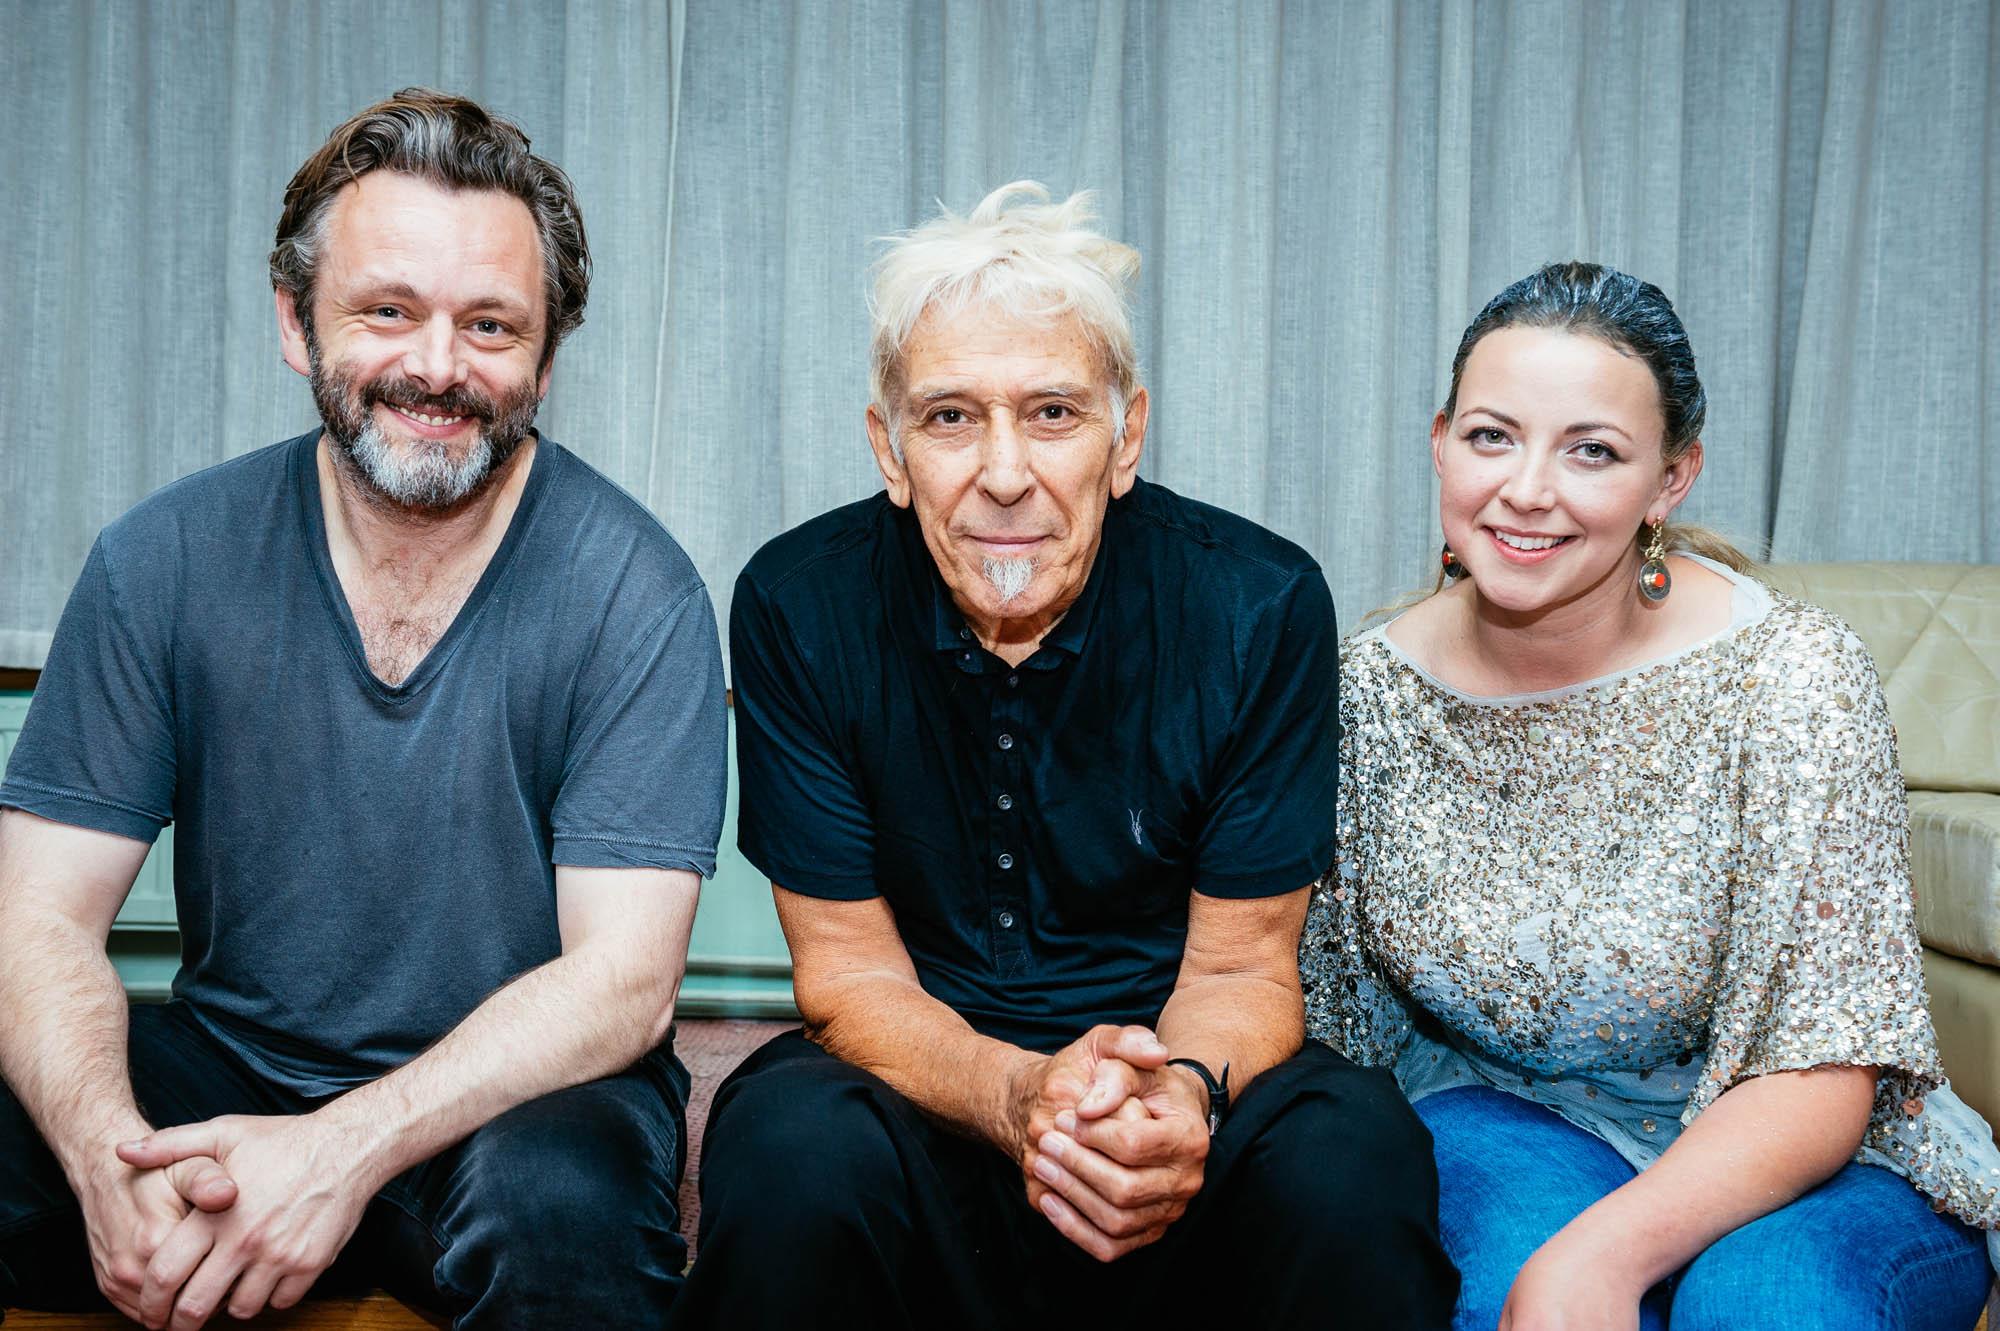 A photo of John Cale (centre) at Festival of Voice with Michael Sheen and Charlotte Church